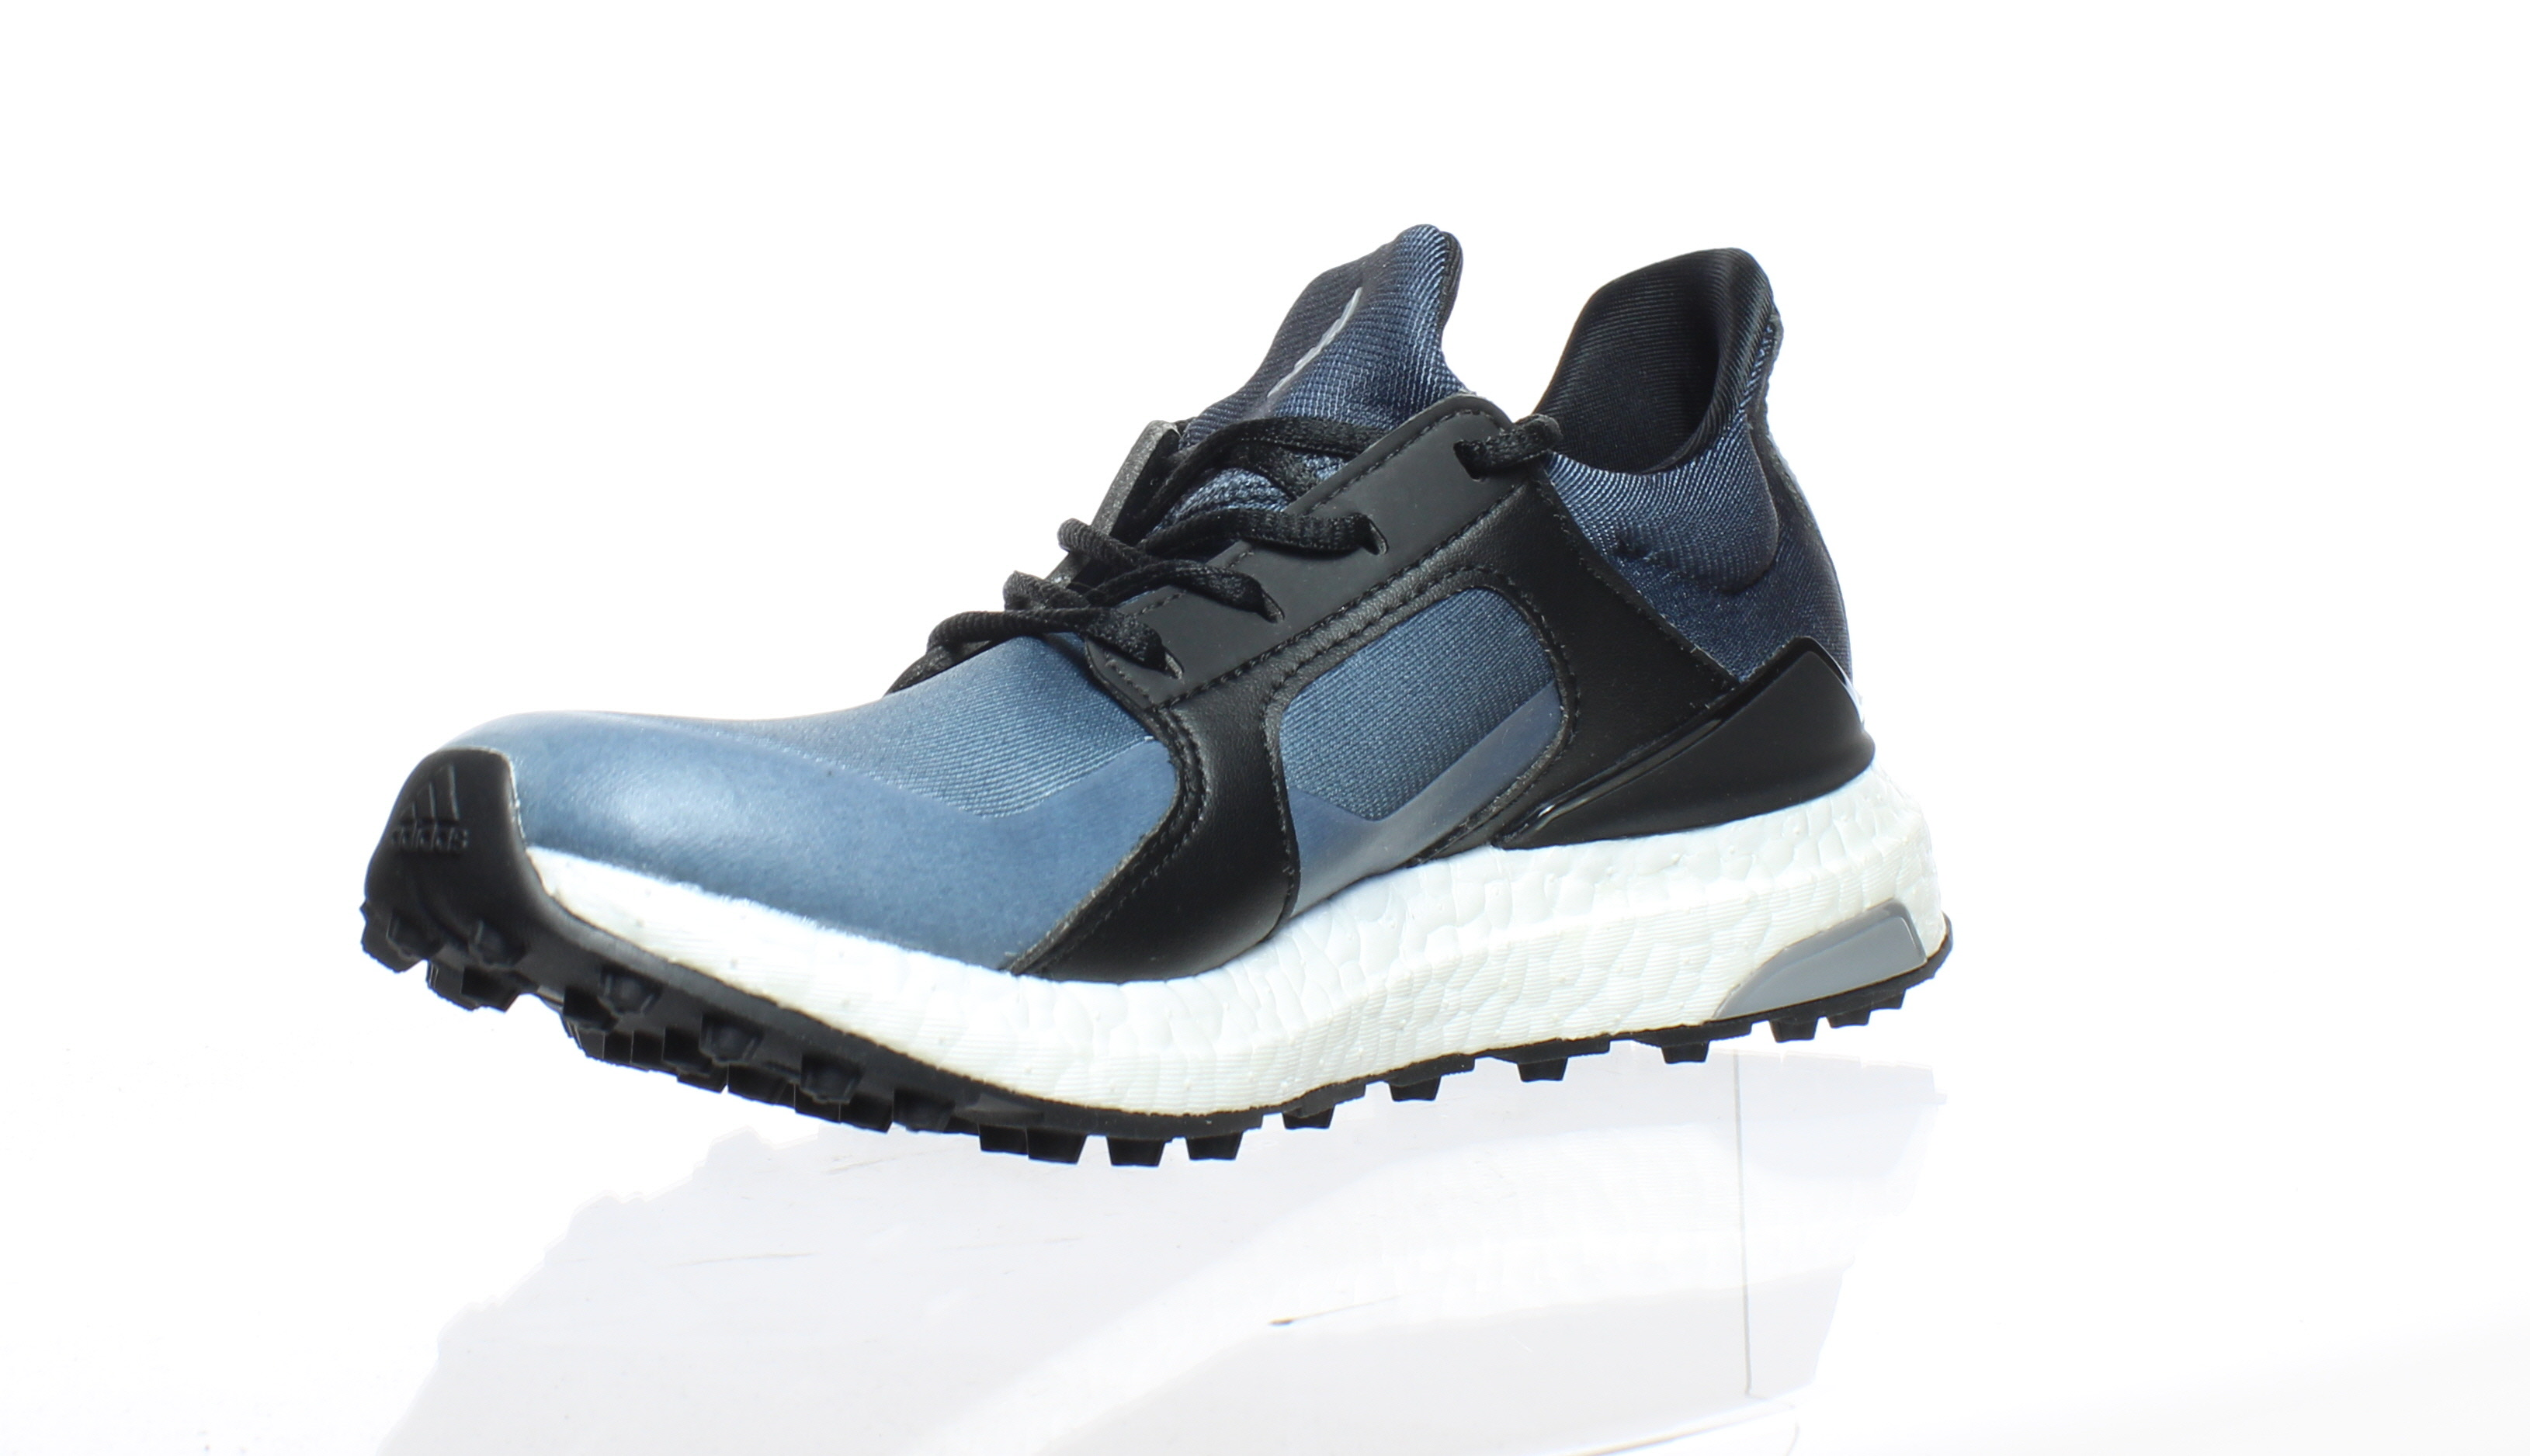 601135cb1 Adidas Womens Climacross Boost Black Golf Shoes Size 5 889136180141 ...